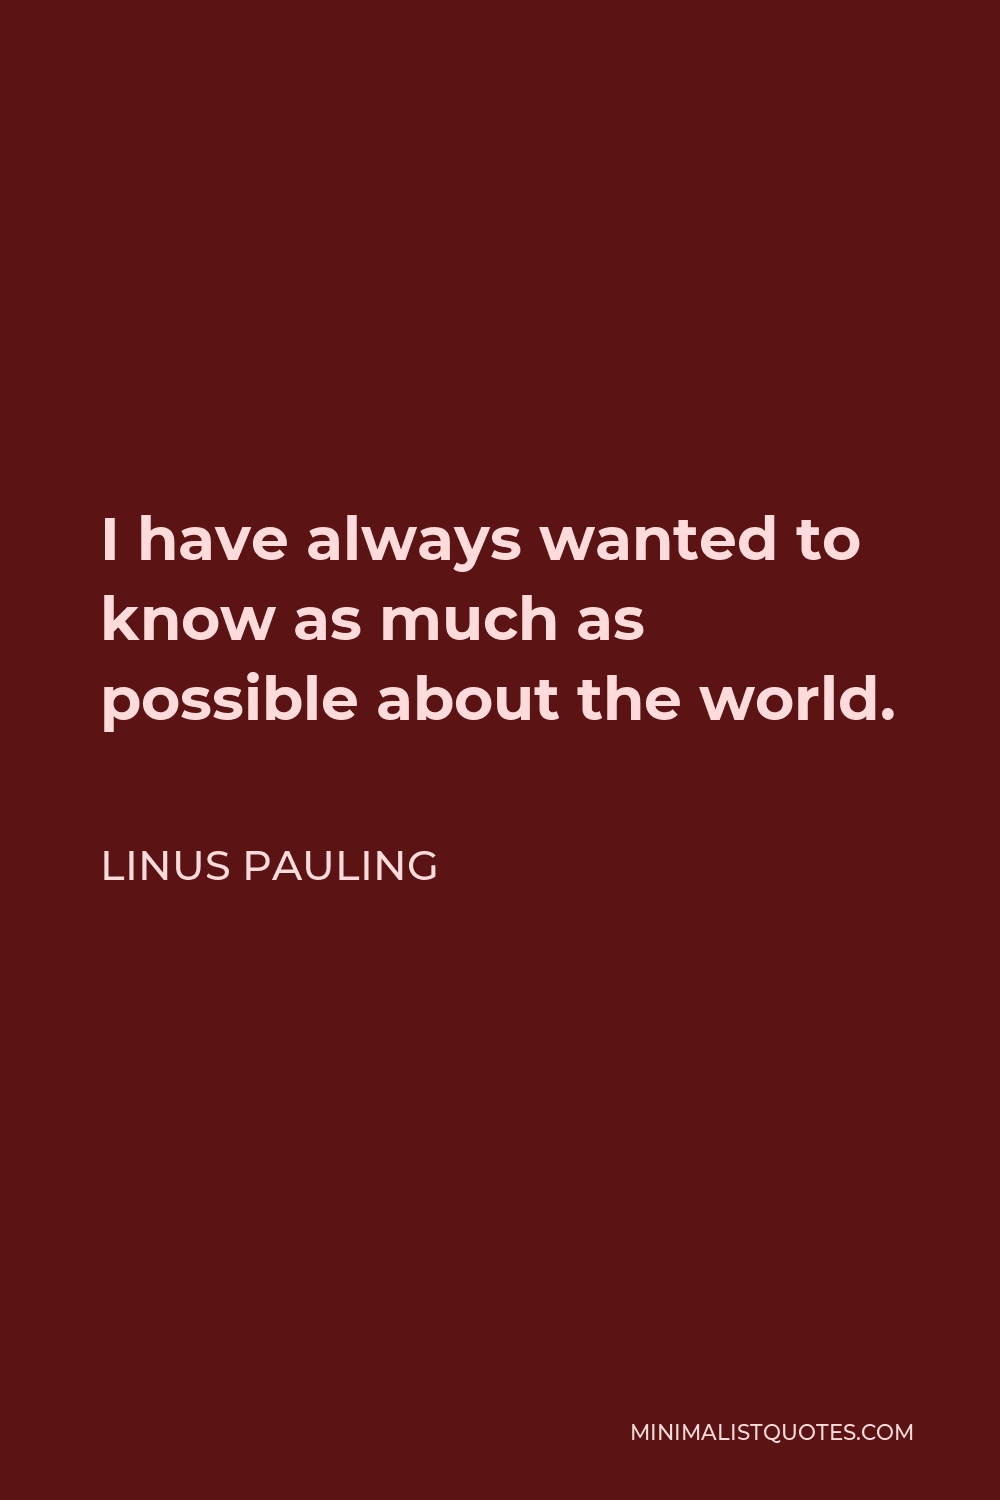 Linus Pauling Quote - I have always wanted to know as much as possible about the world.